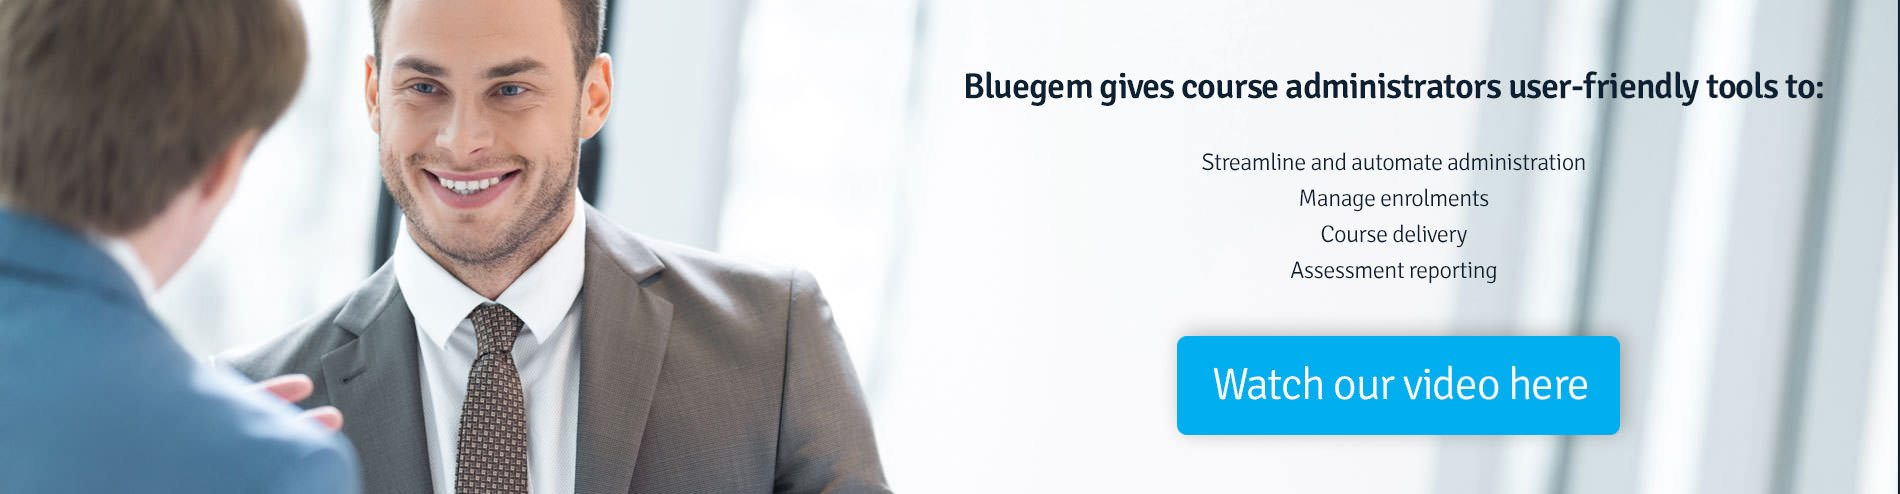 bluegem features and benefits